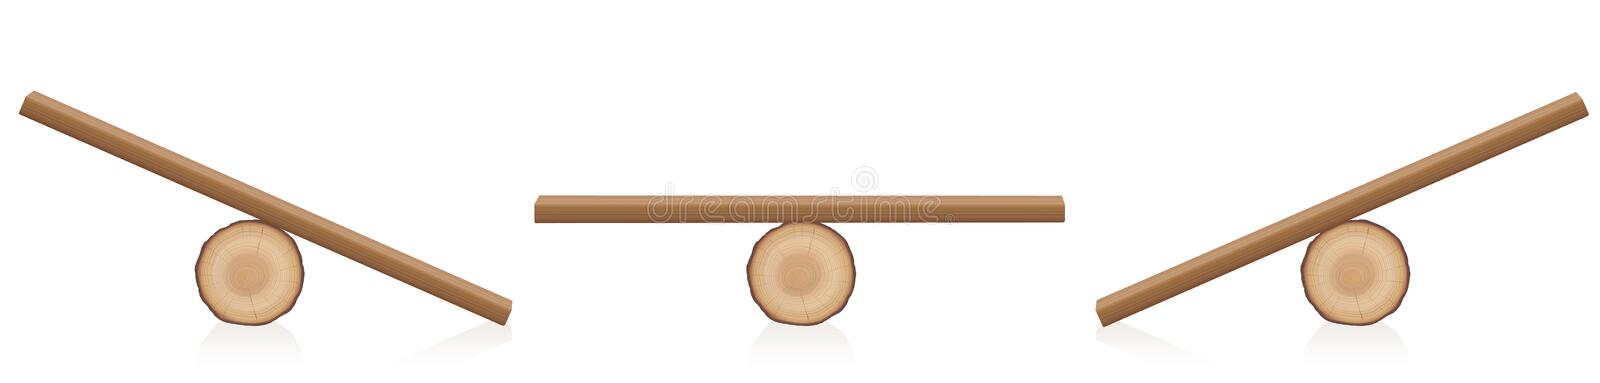 Seesaw Balance Equal Unequal Weight Wooden Toy. Seesaw balance. Equal and unequal weight. Wooden balance toy. Simple rustic seesaws constructed of a lying tree royalty free illustration